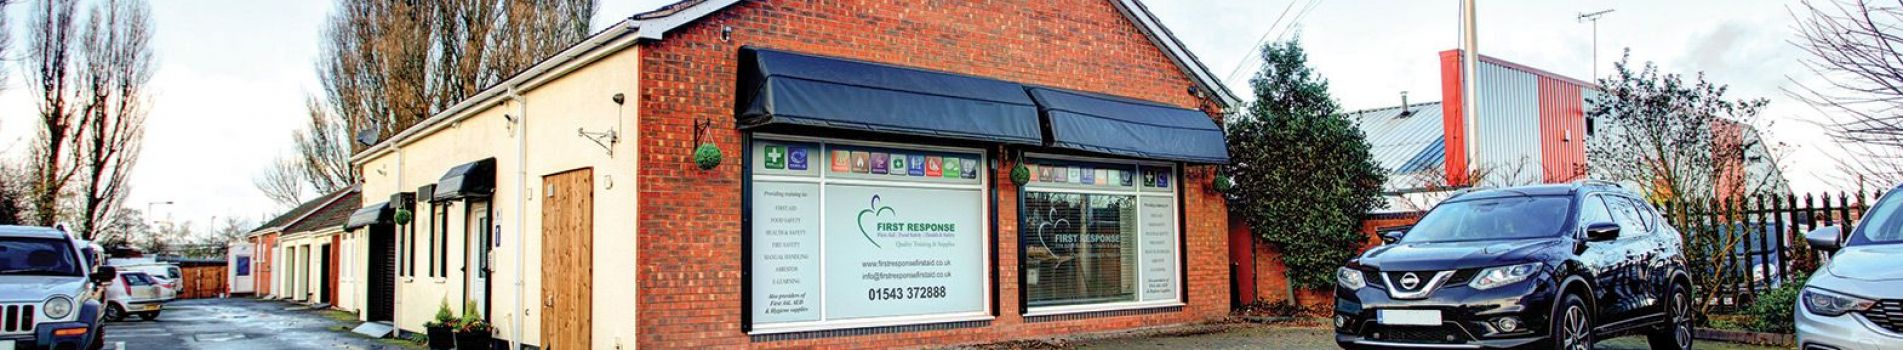 First Response (First Aid) Ltd Offices